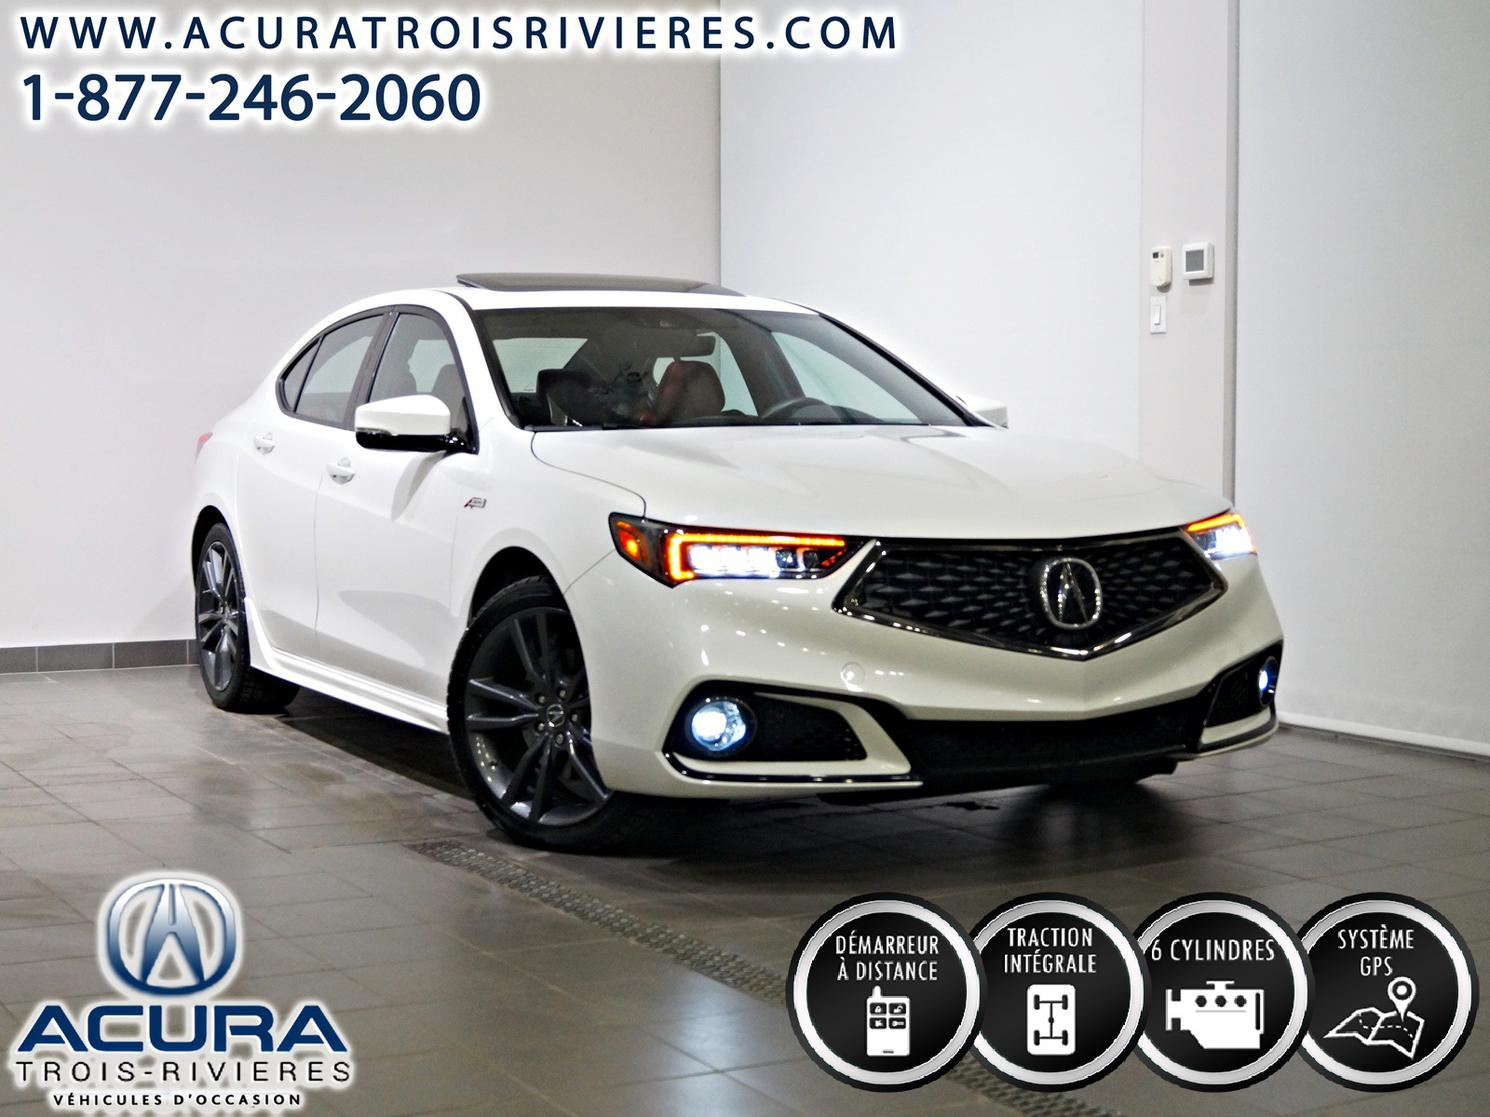 2019 Acura TLX SH-AWD / V6 / A-SPEC / TECH / cuir rouge  ** 1.99% disponible **